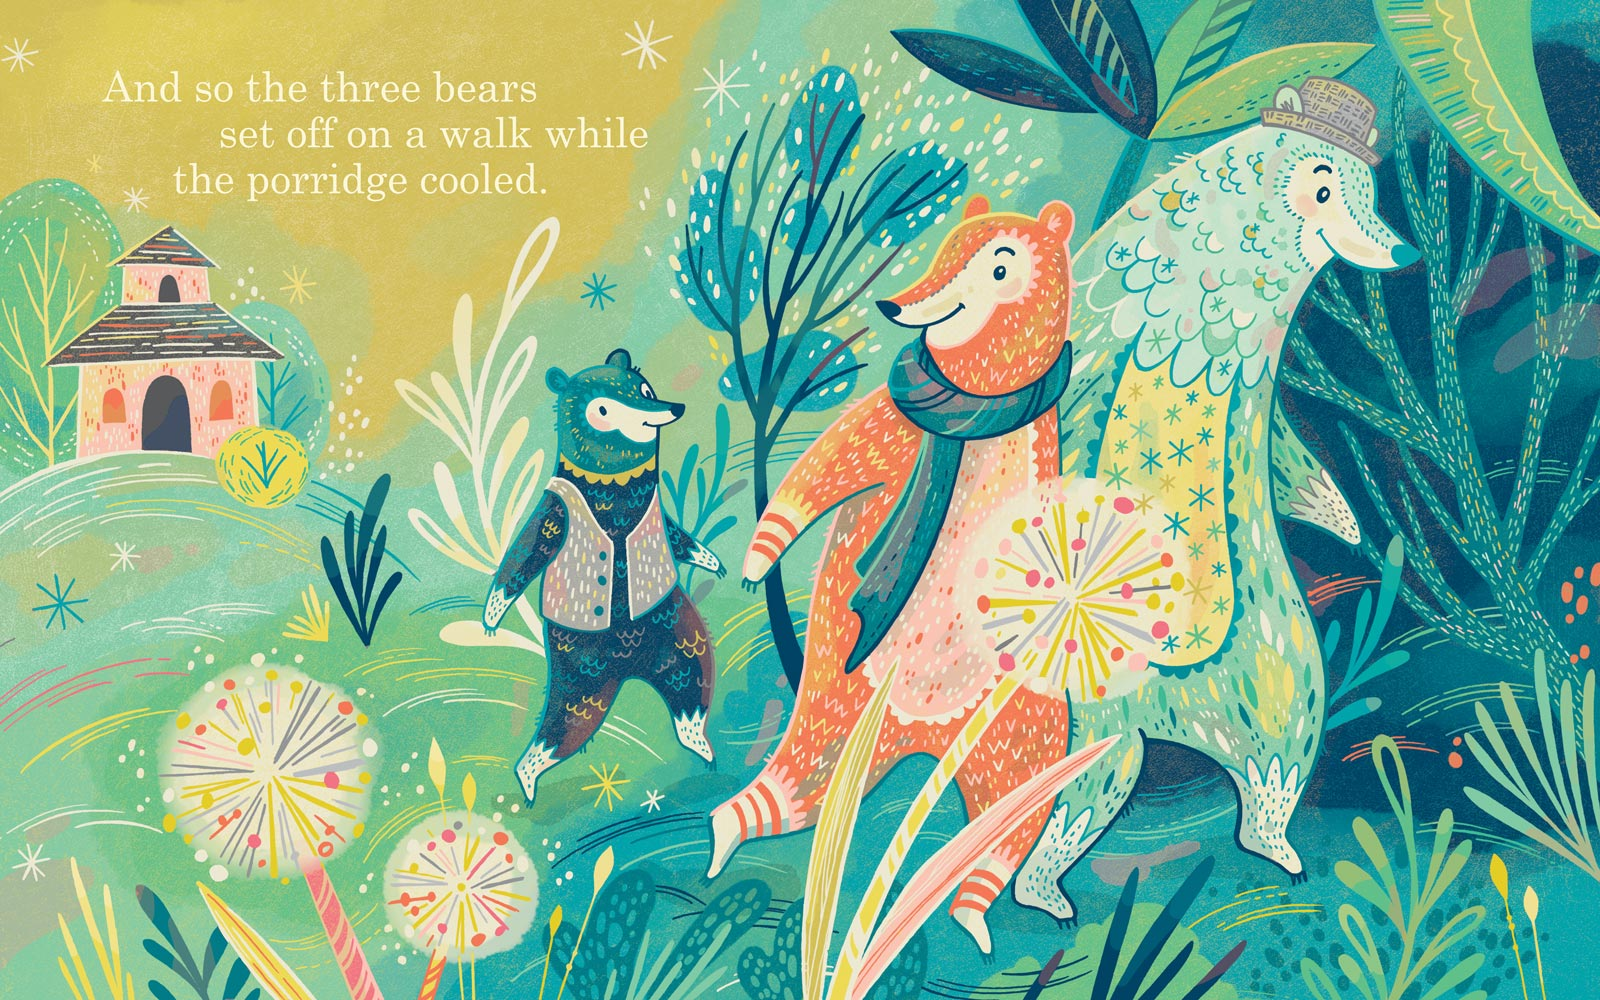 Anni_Betts_Illustration_Three_Bears